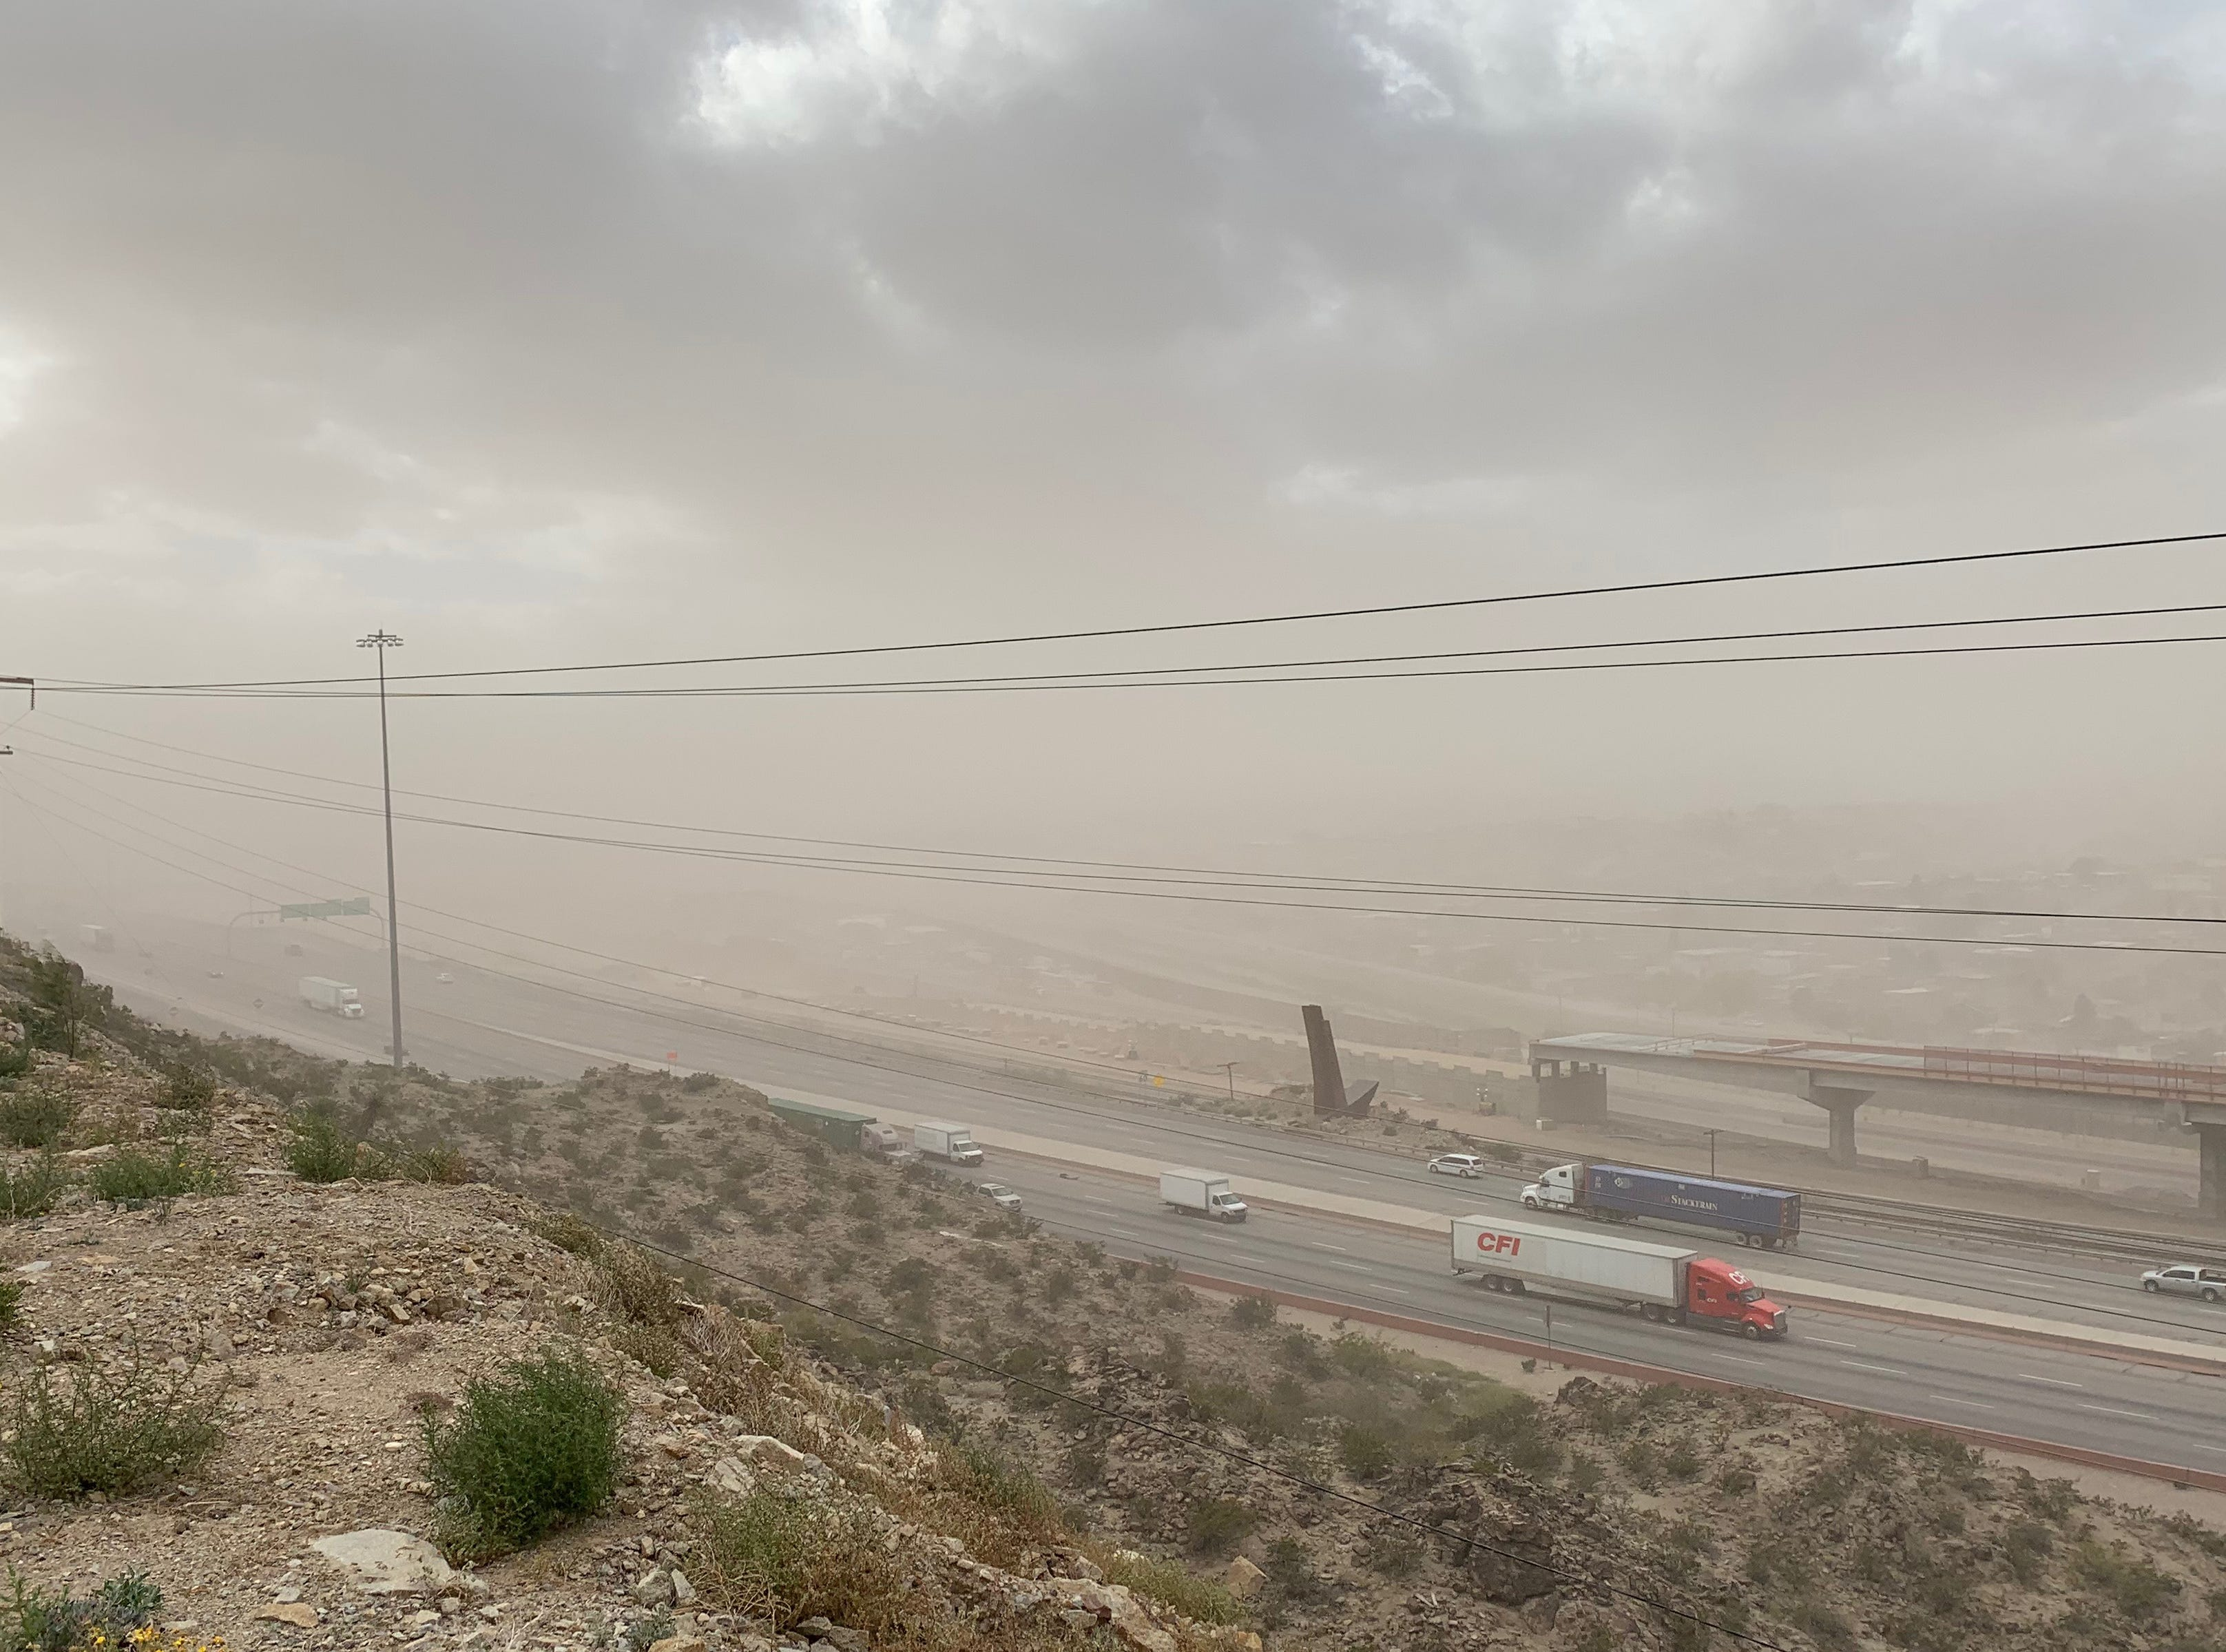 El Pasoans were greeted by colder temperatures Friday morning in the low fifties, along with winds that will increase in speed throughout the day mixed with light rain. Due to the high winds and dust El Paso's air quality has been graded unhealthy for sensitive groups.